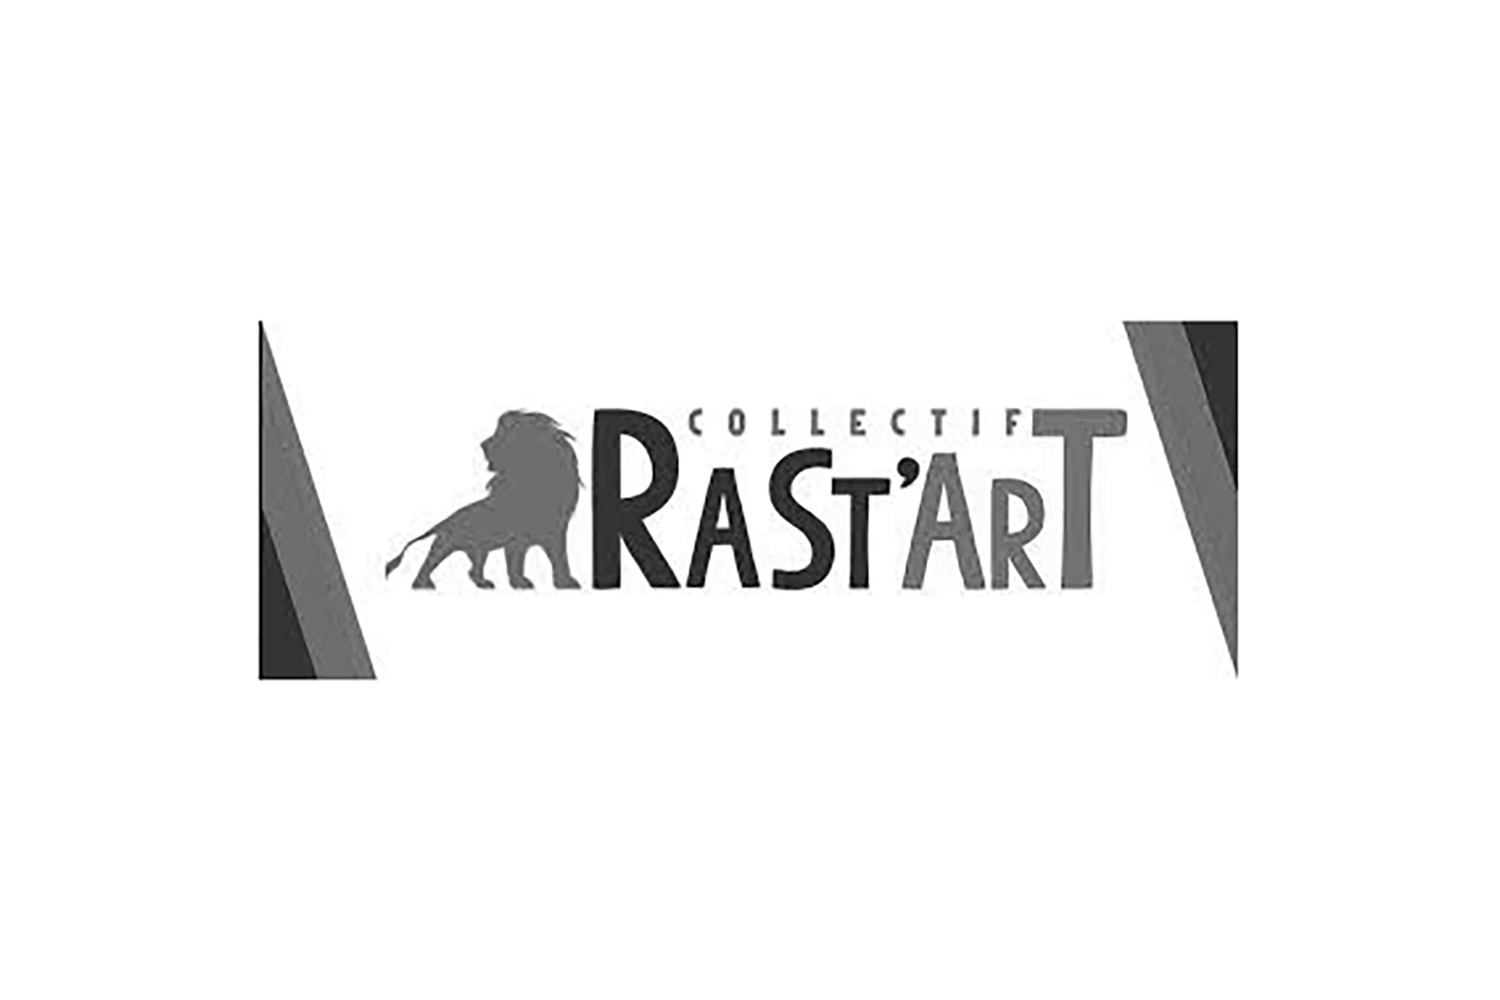 Collectif Rast'Art